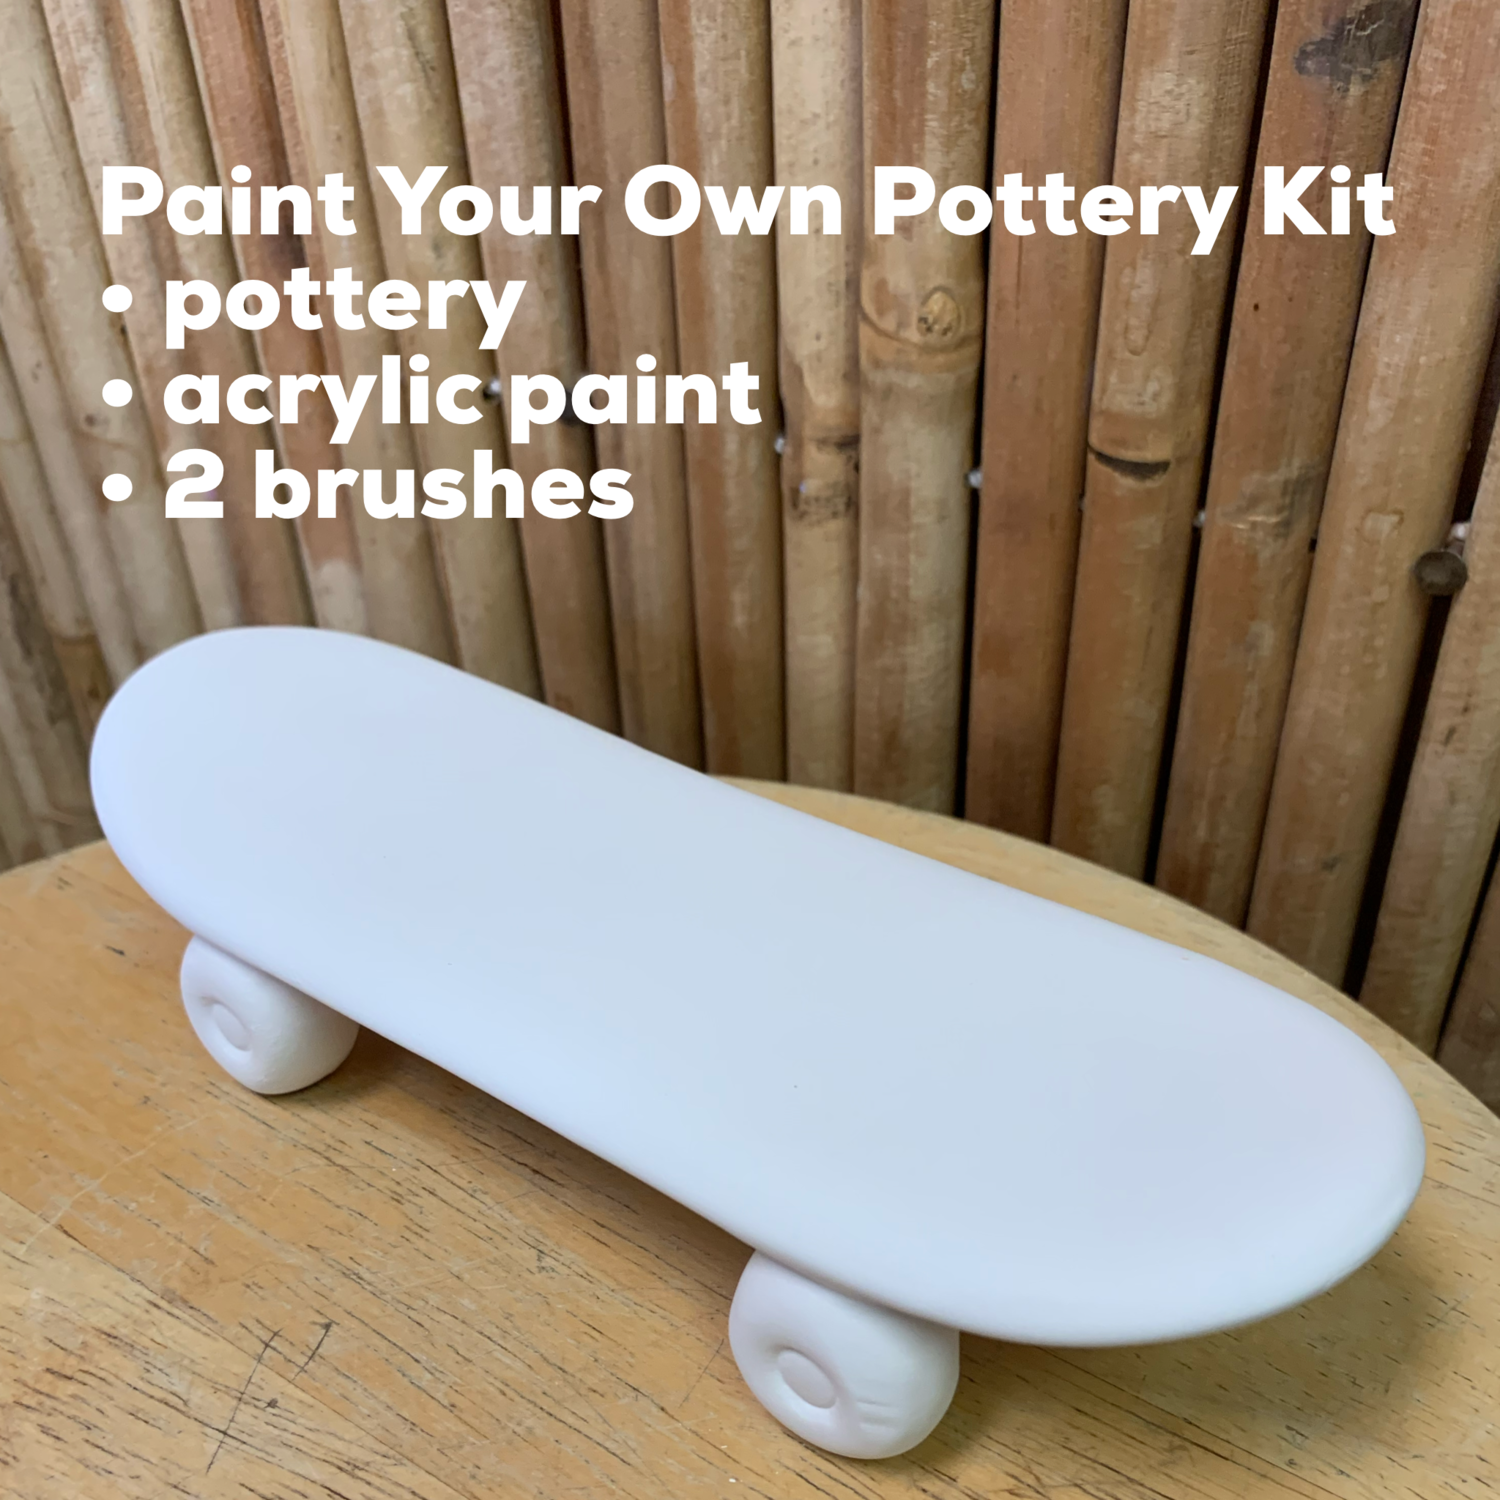 NO FIRE Paint Your Own Pottery Kit -  Ceramic Skateboard Acrylic Painting Kit